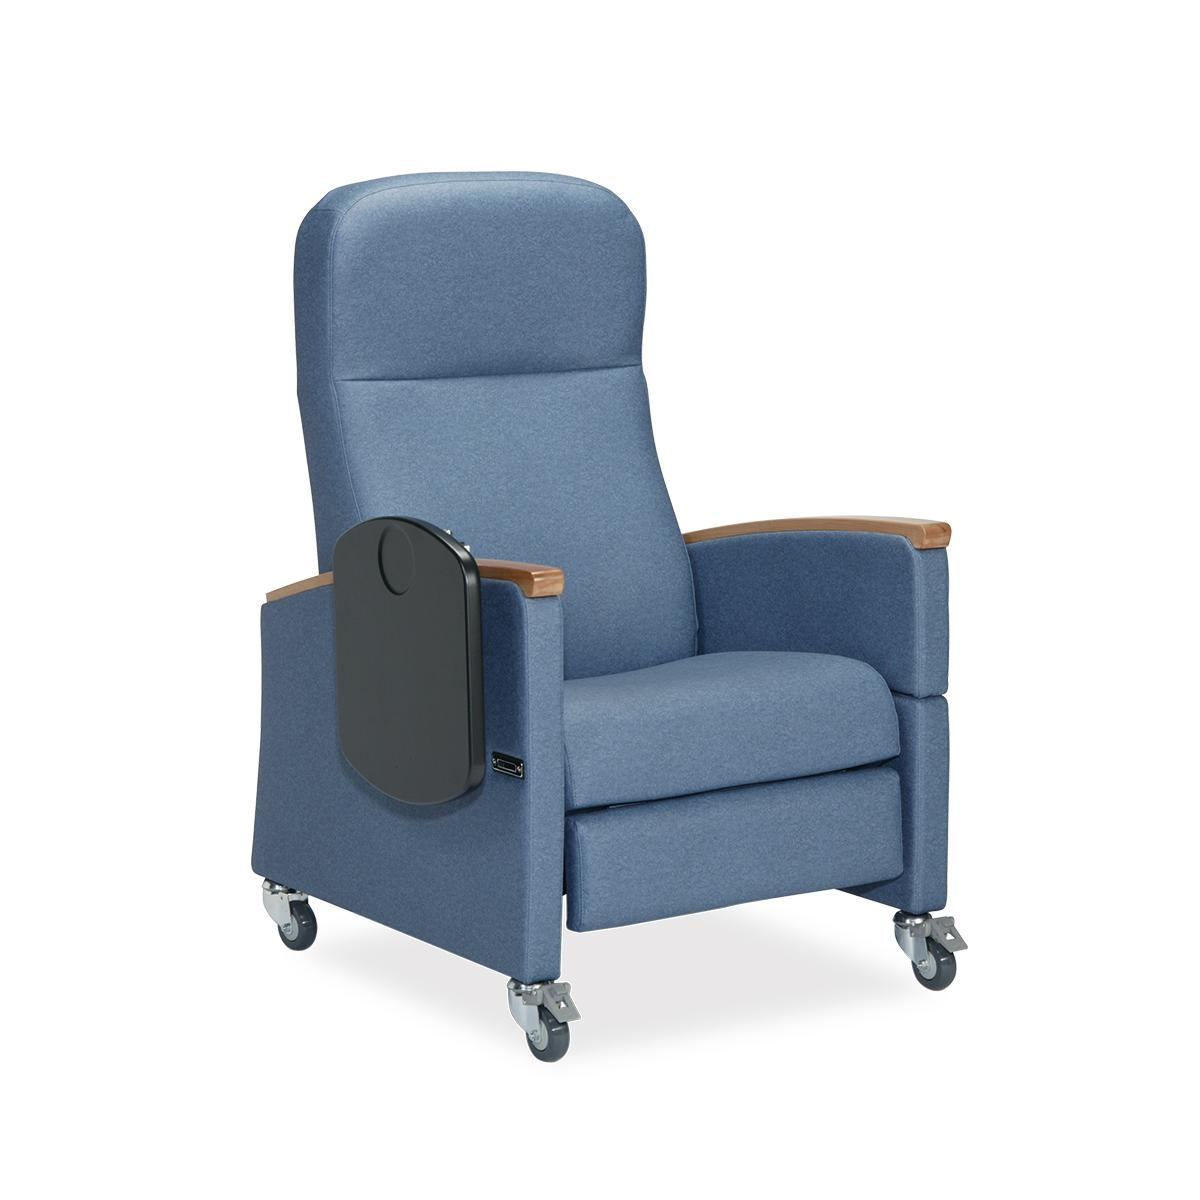 Art of Care® Three Position Recliner, blue, 3/4 view